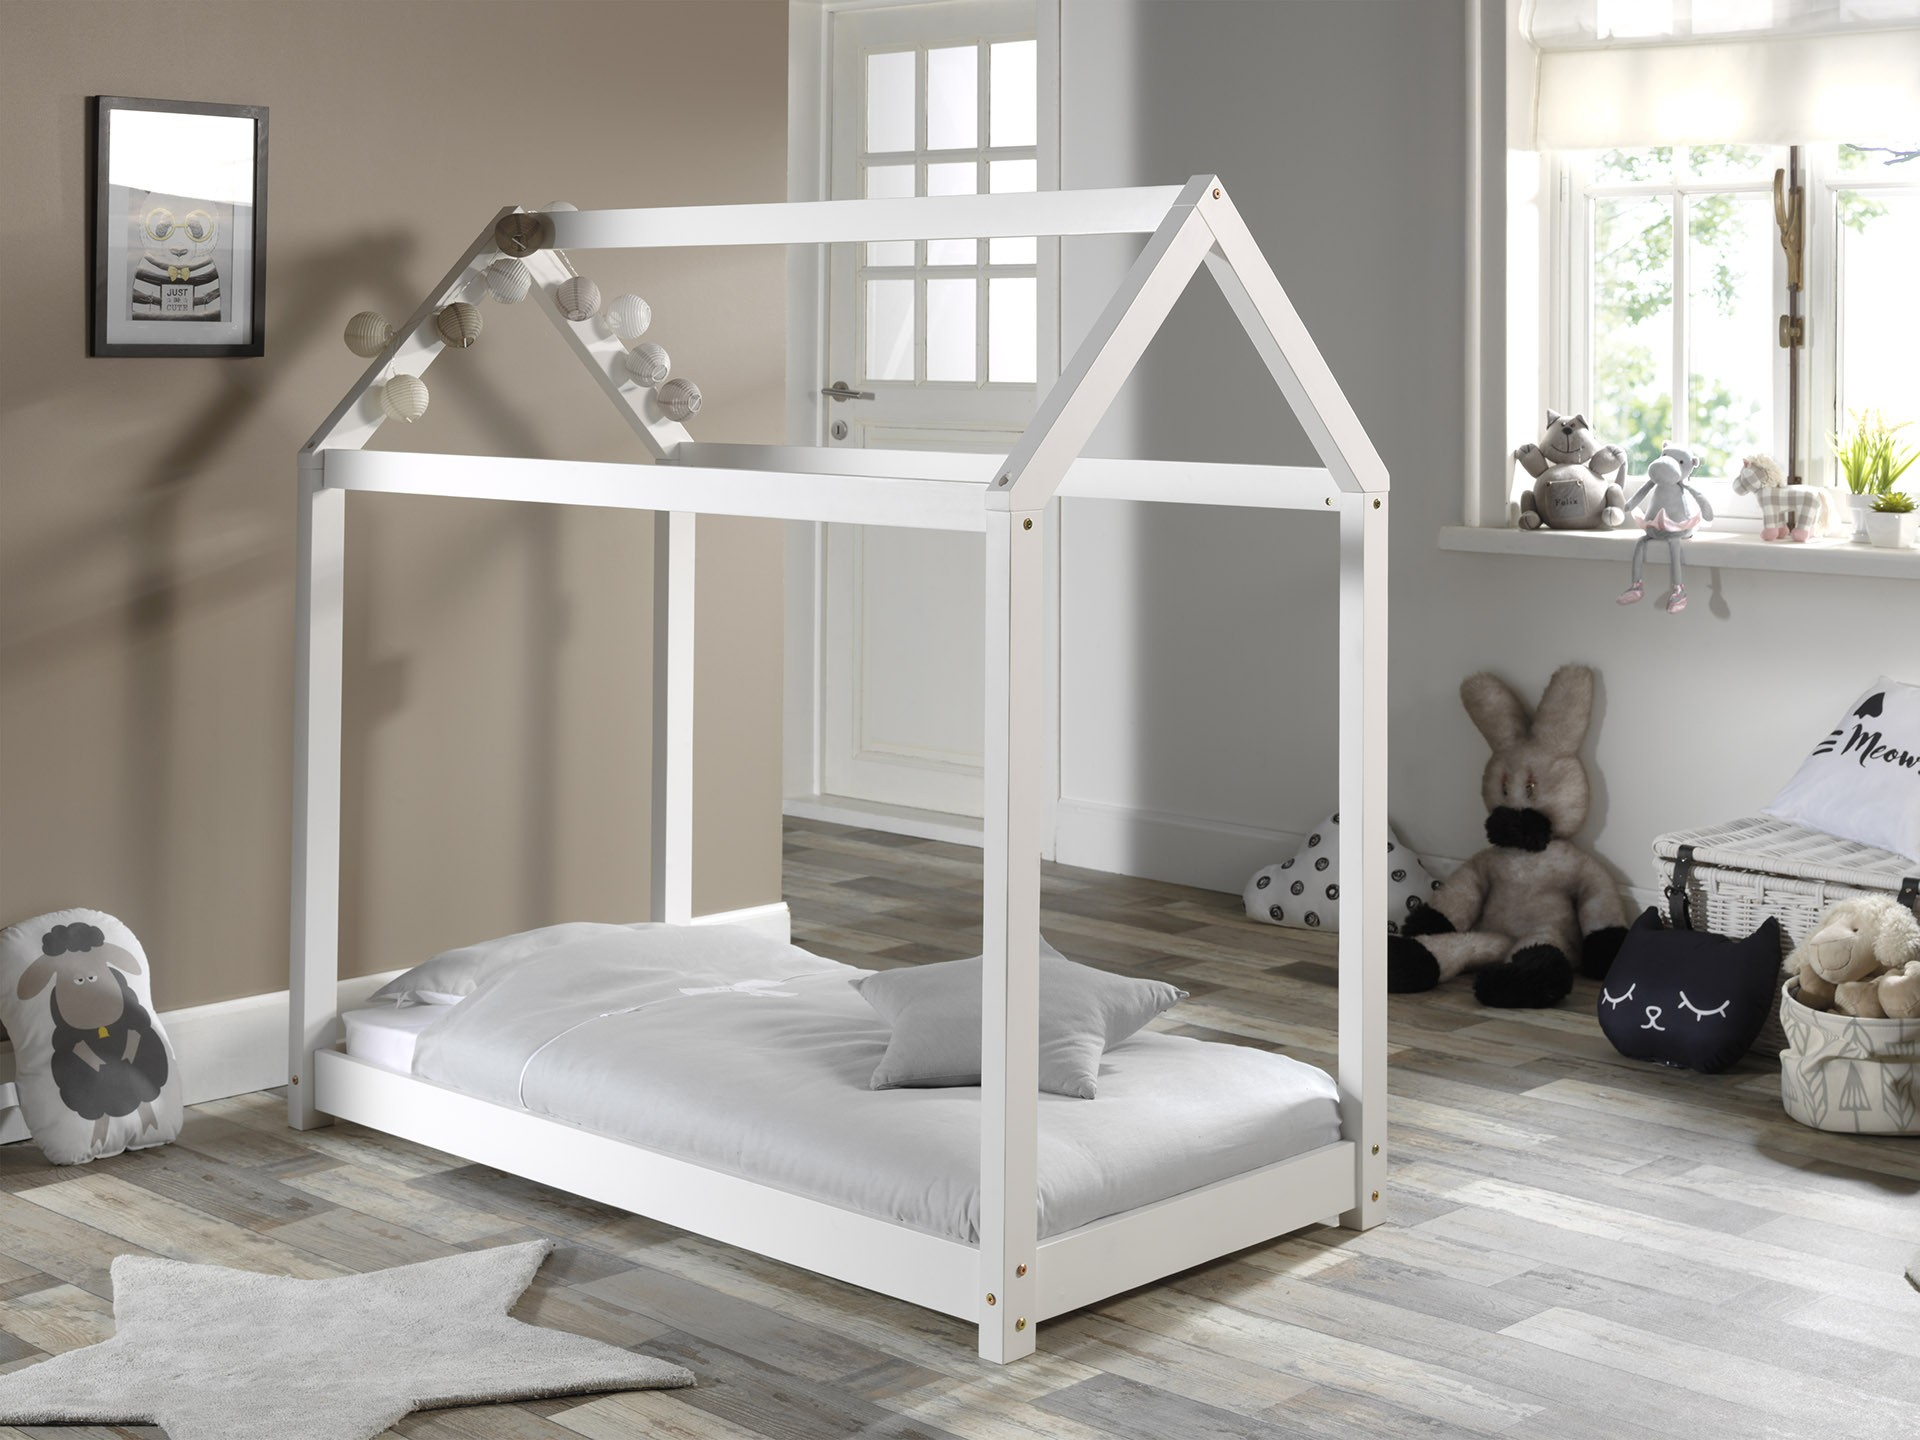 Huisbed Home 70x140 - wit